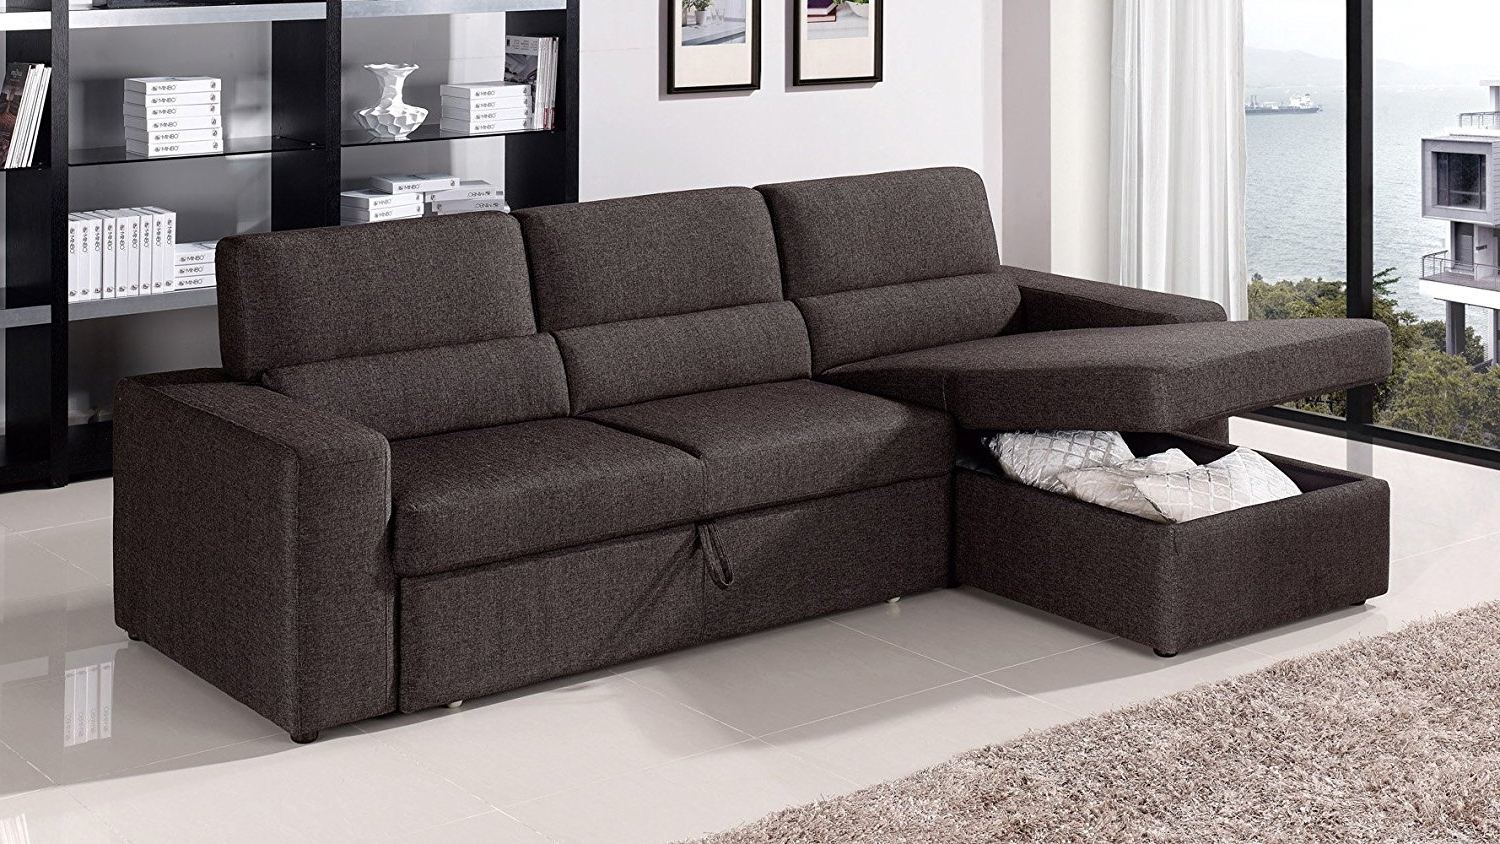 Popular Amazon: Black/brown Clubber Sleeper Sectional Sofa – Left Inside Chaise Sectional Sleepers (View 11 of 15)